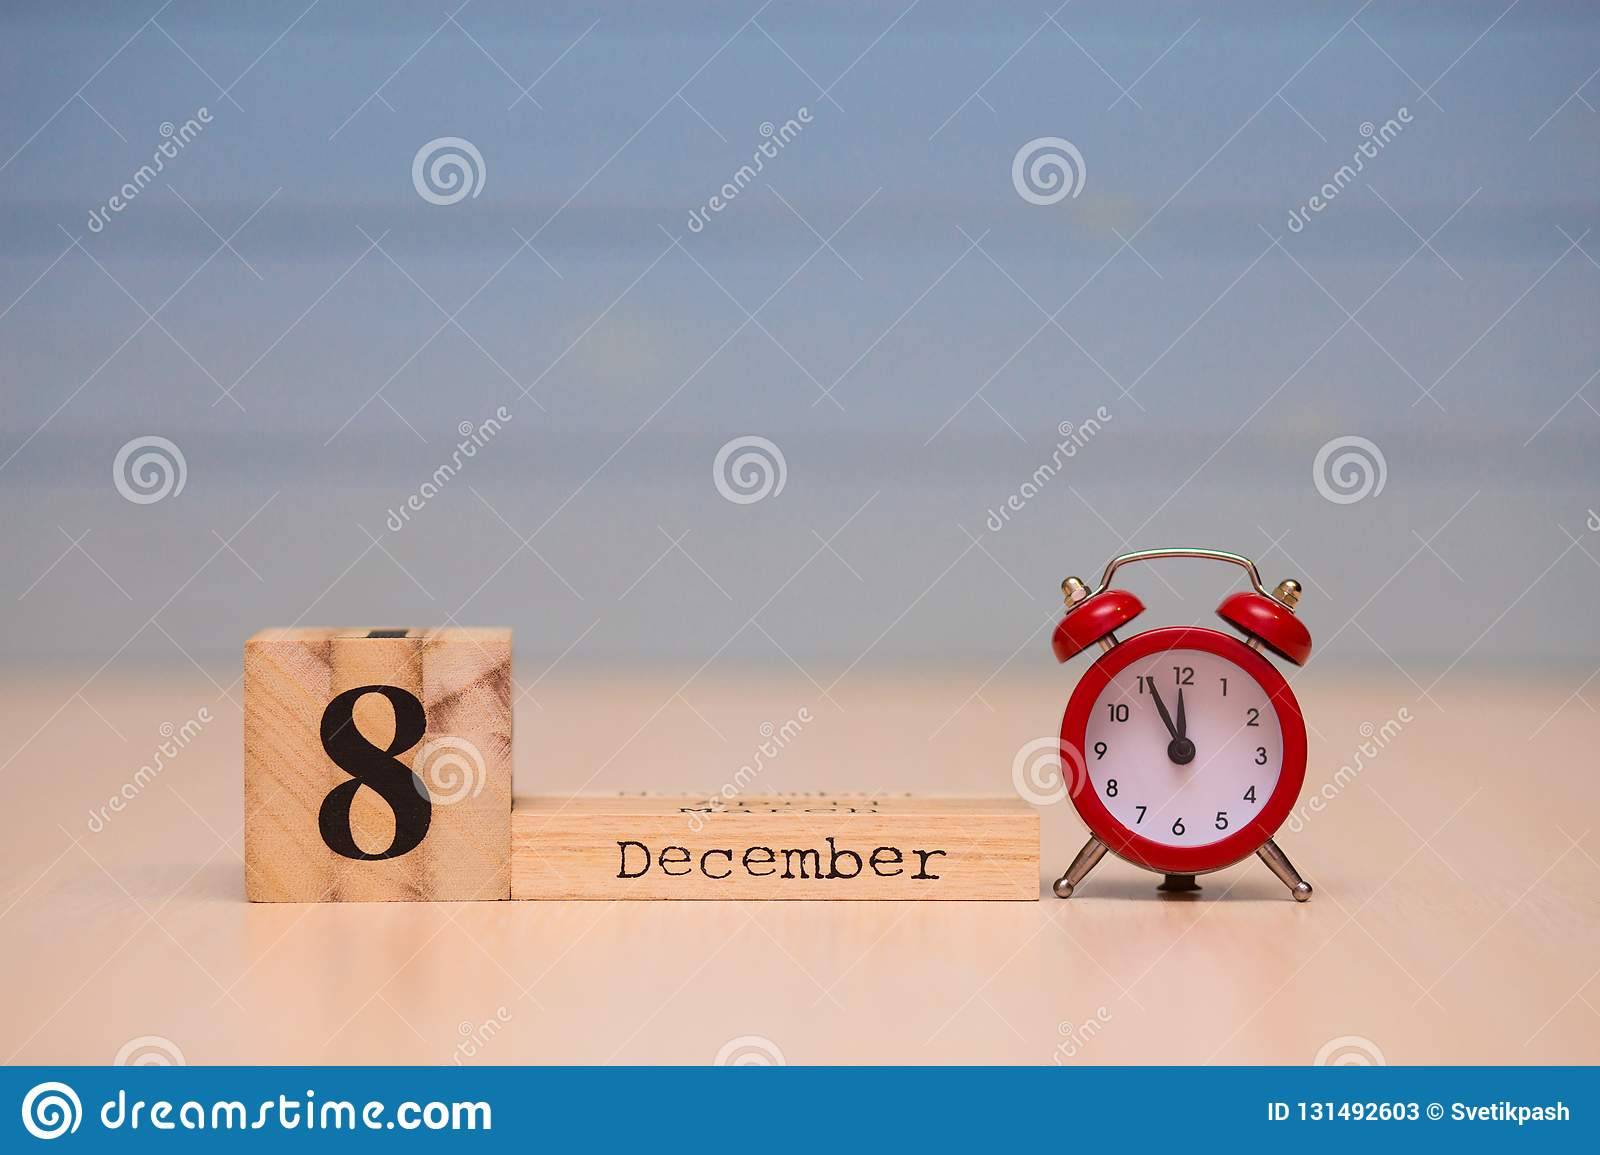 December 8th set on wooden calendar and red alarm clock with blue background